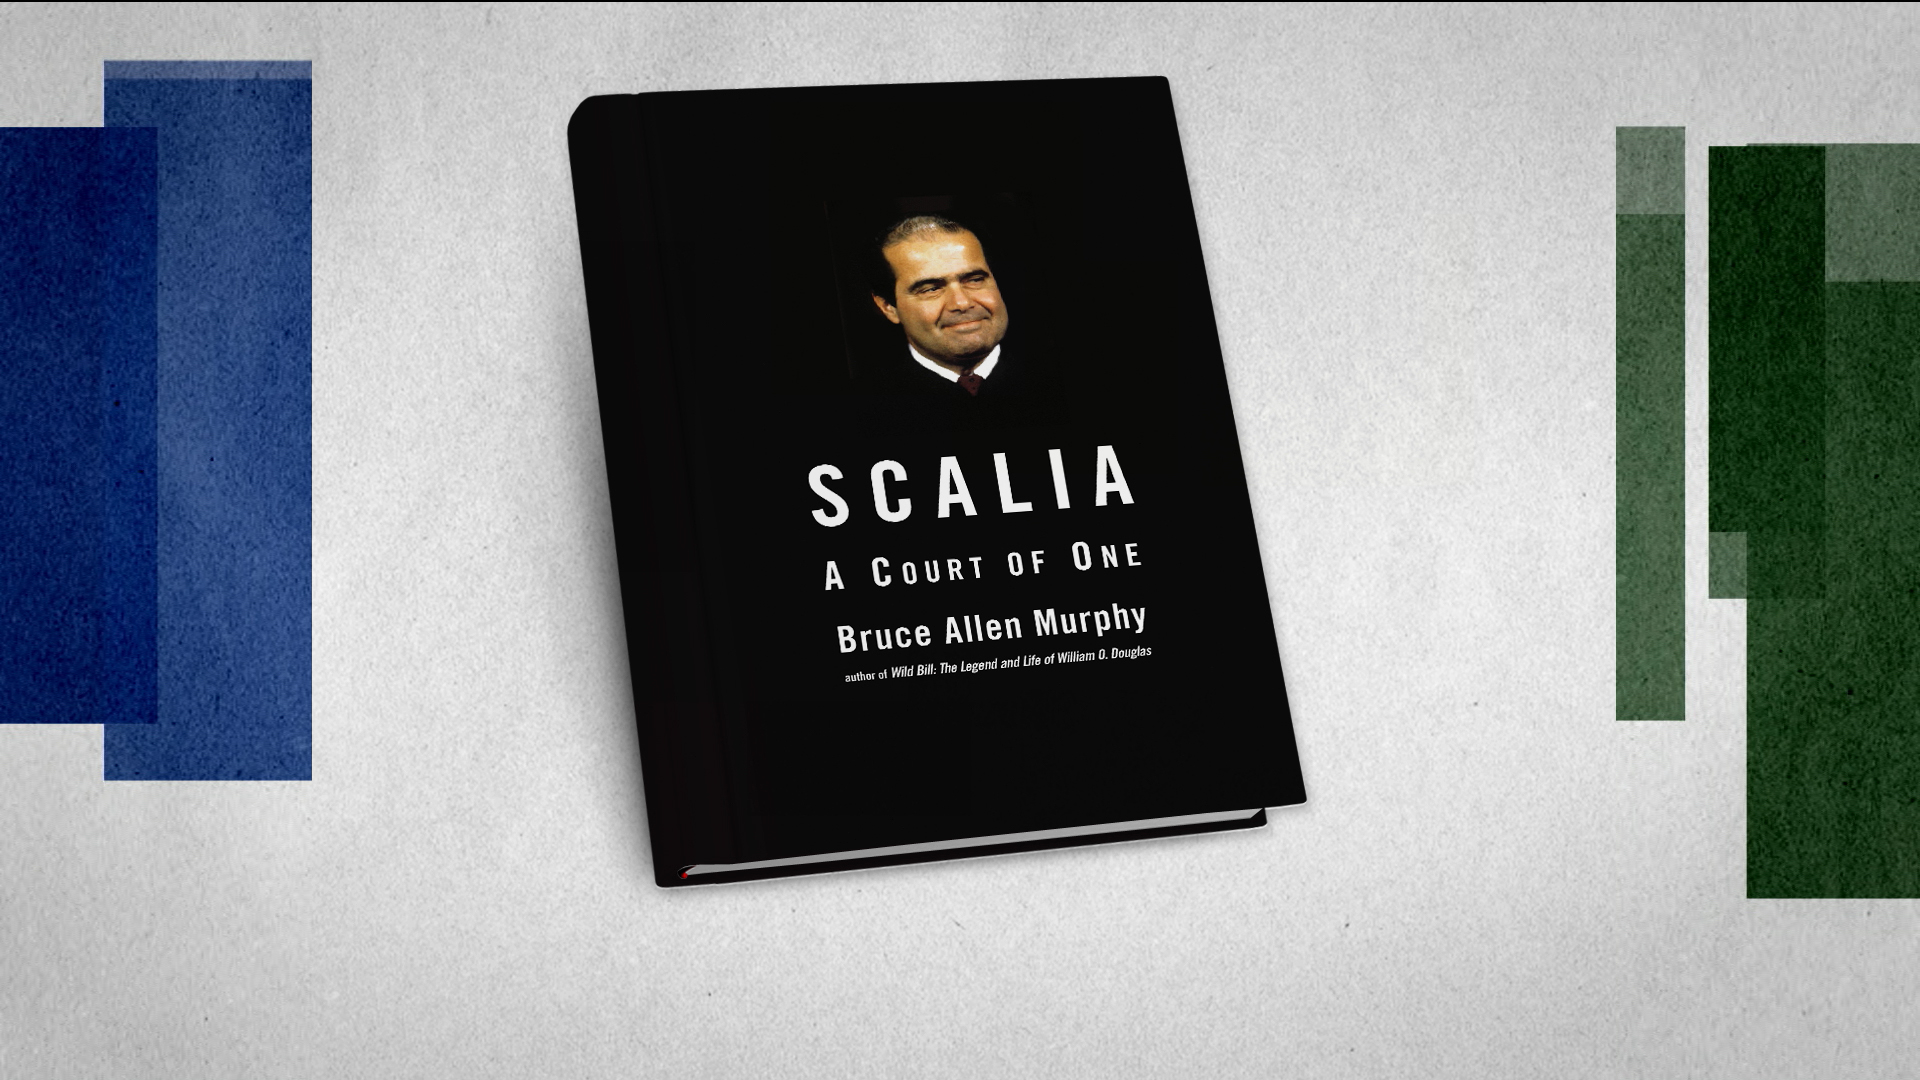 The life and legacy of Antonin Scalia